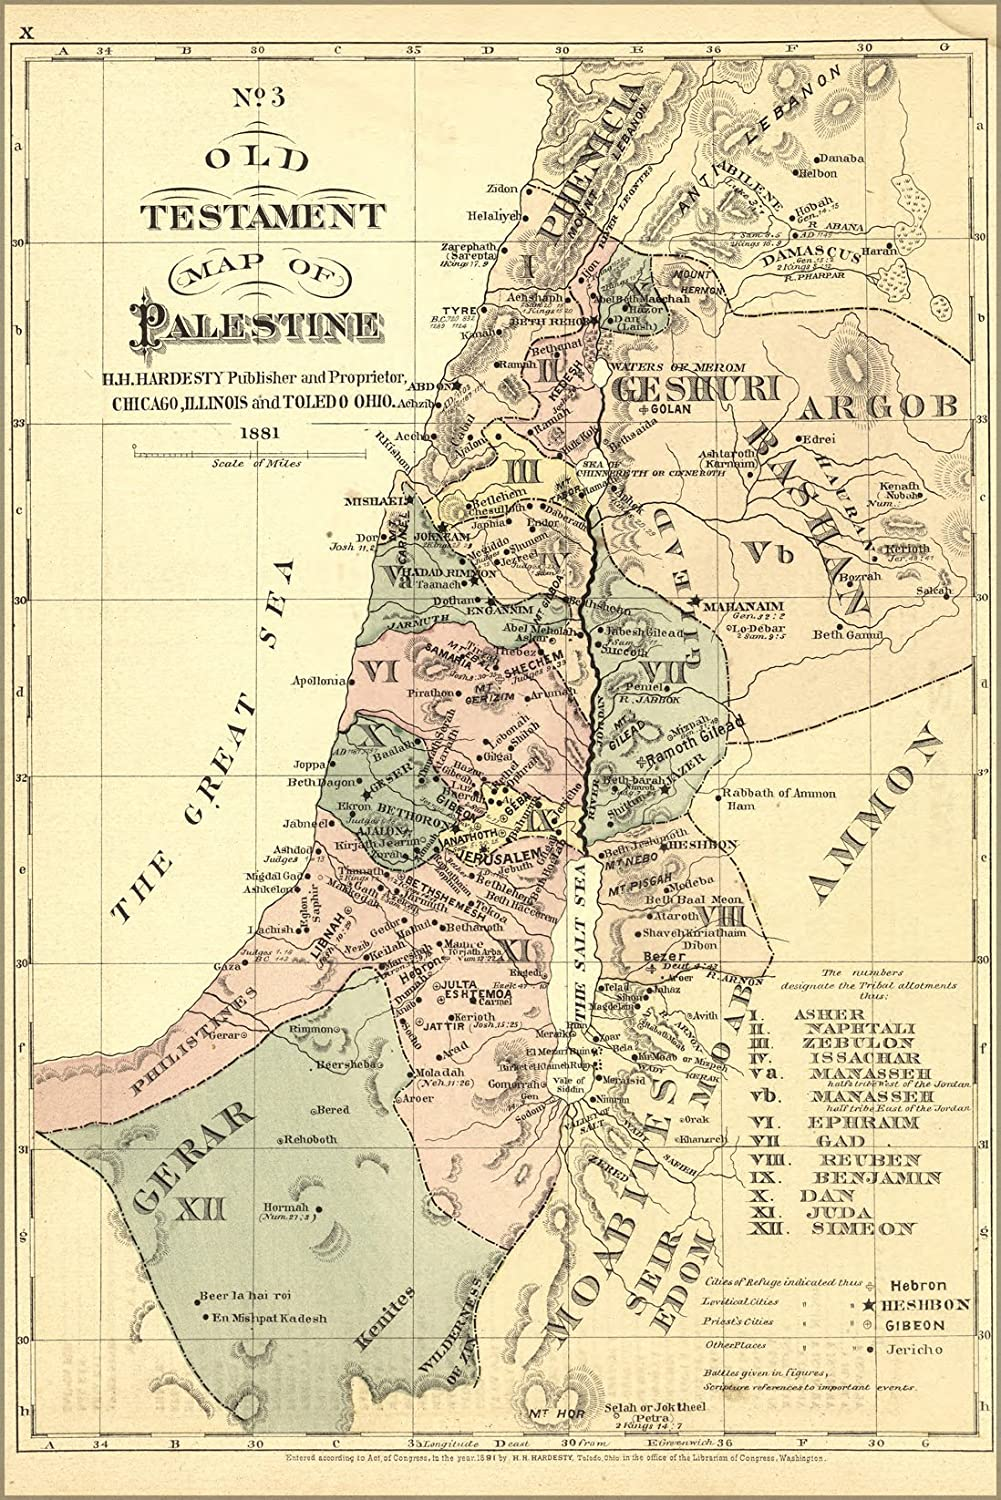 Amazoncom X Poster Old Testament Map Palestine Israel Holy - Maps of israel